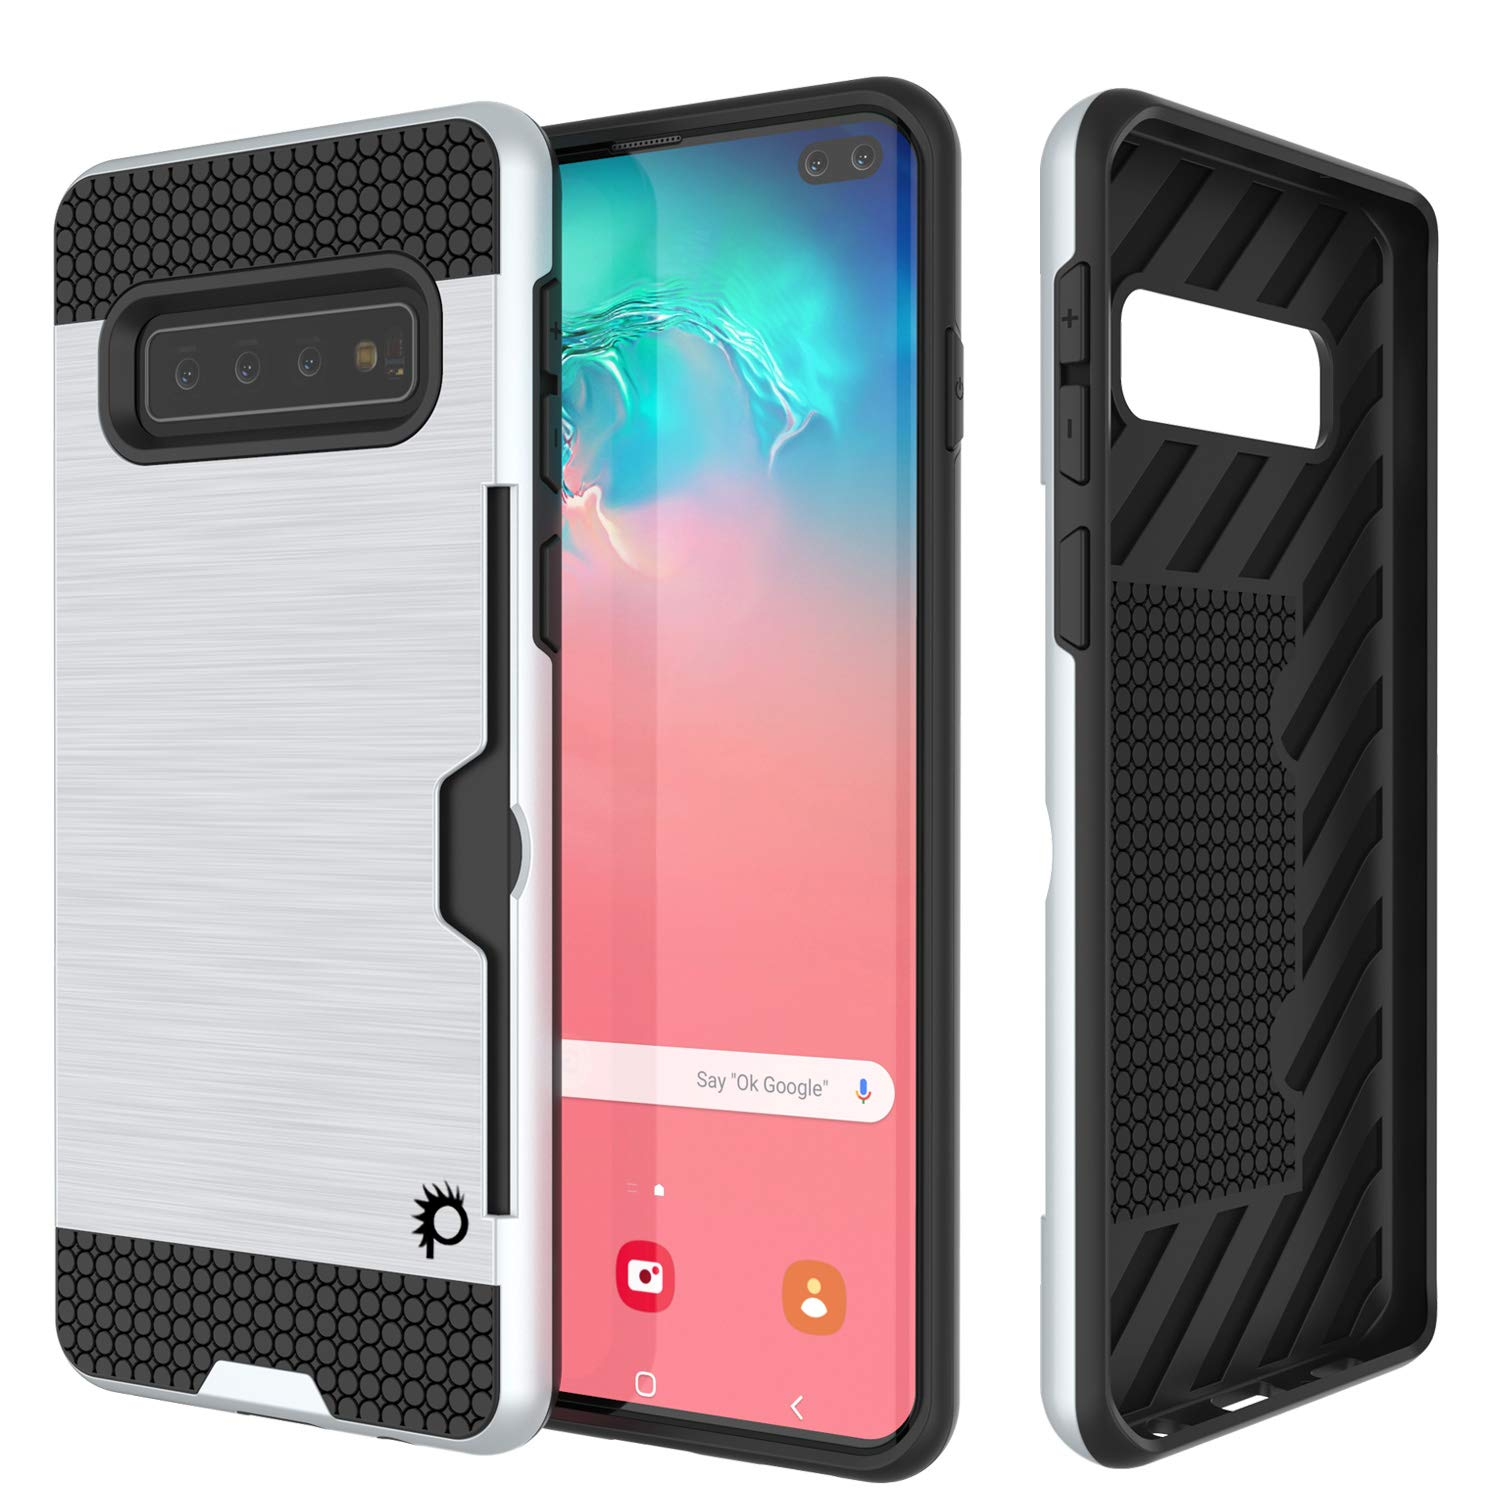 Galaxy S10+ Plus  Case, PUNKcase [SLOT Series] [Slim Fit] Dual-Layer Armor Cover w/Integrated Anti-Shock System, Credit Card Slot & Screen Protector [White]